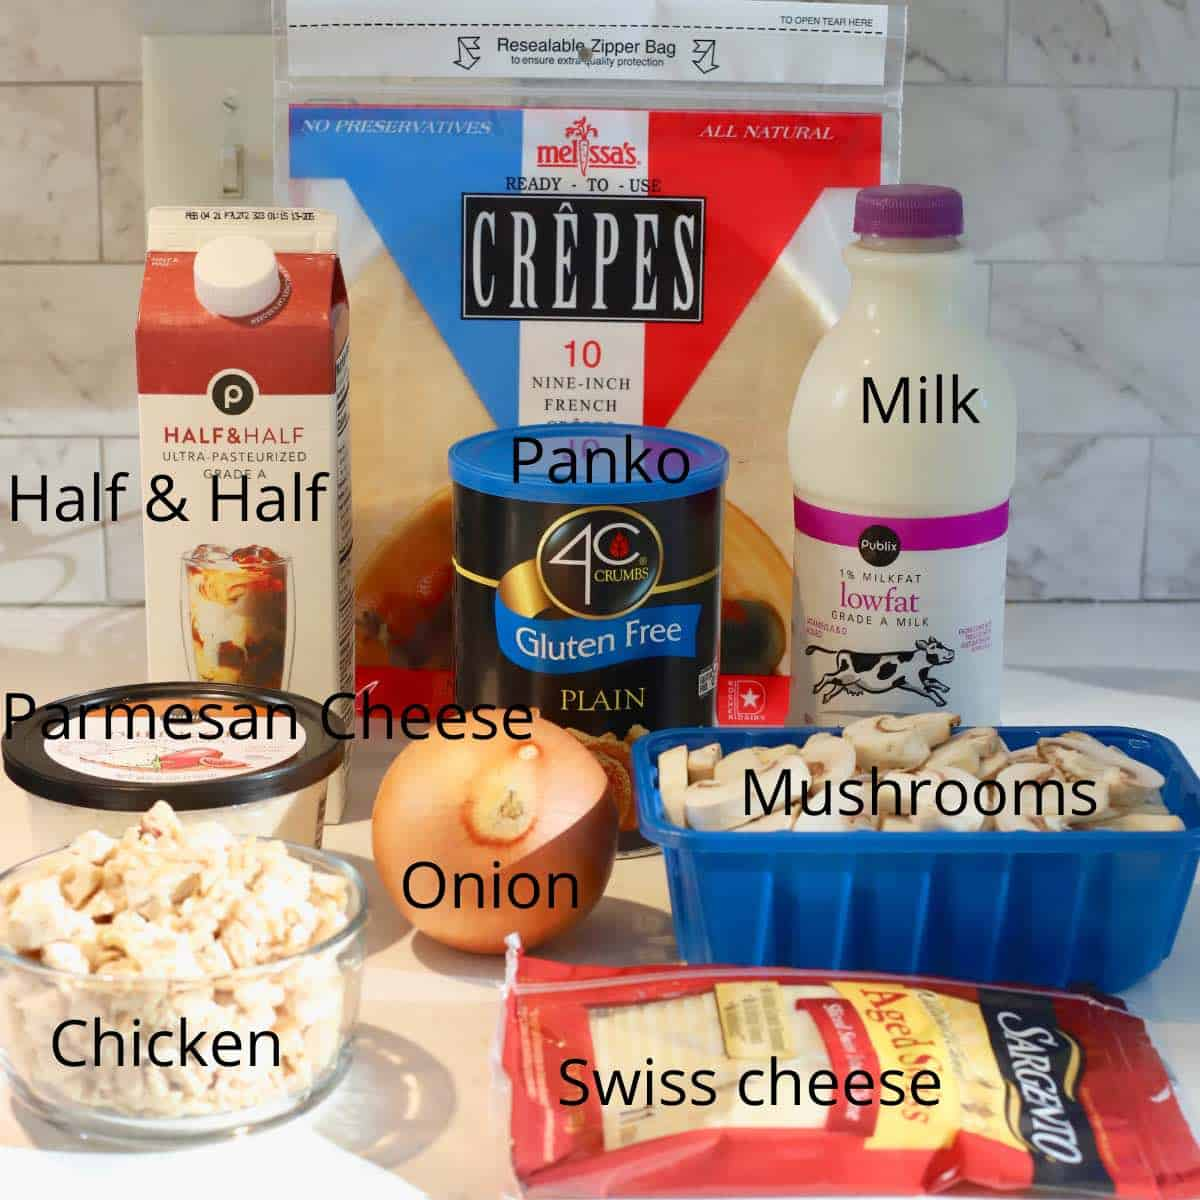 Ingredients for chicken crepes including mushrooms, chicken and half and half.